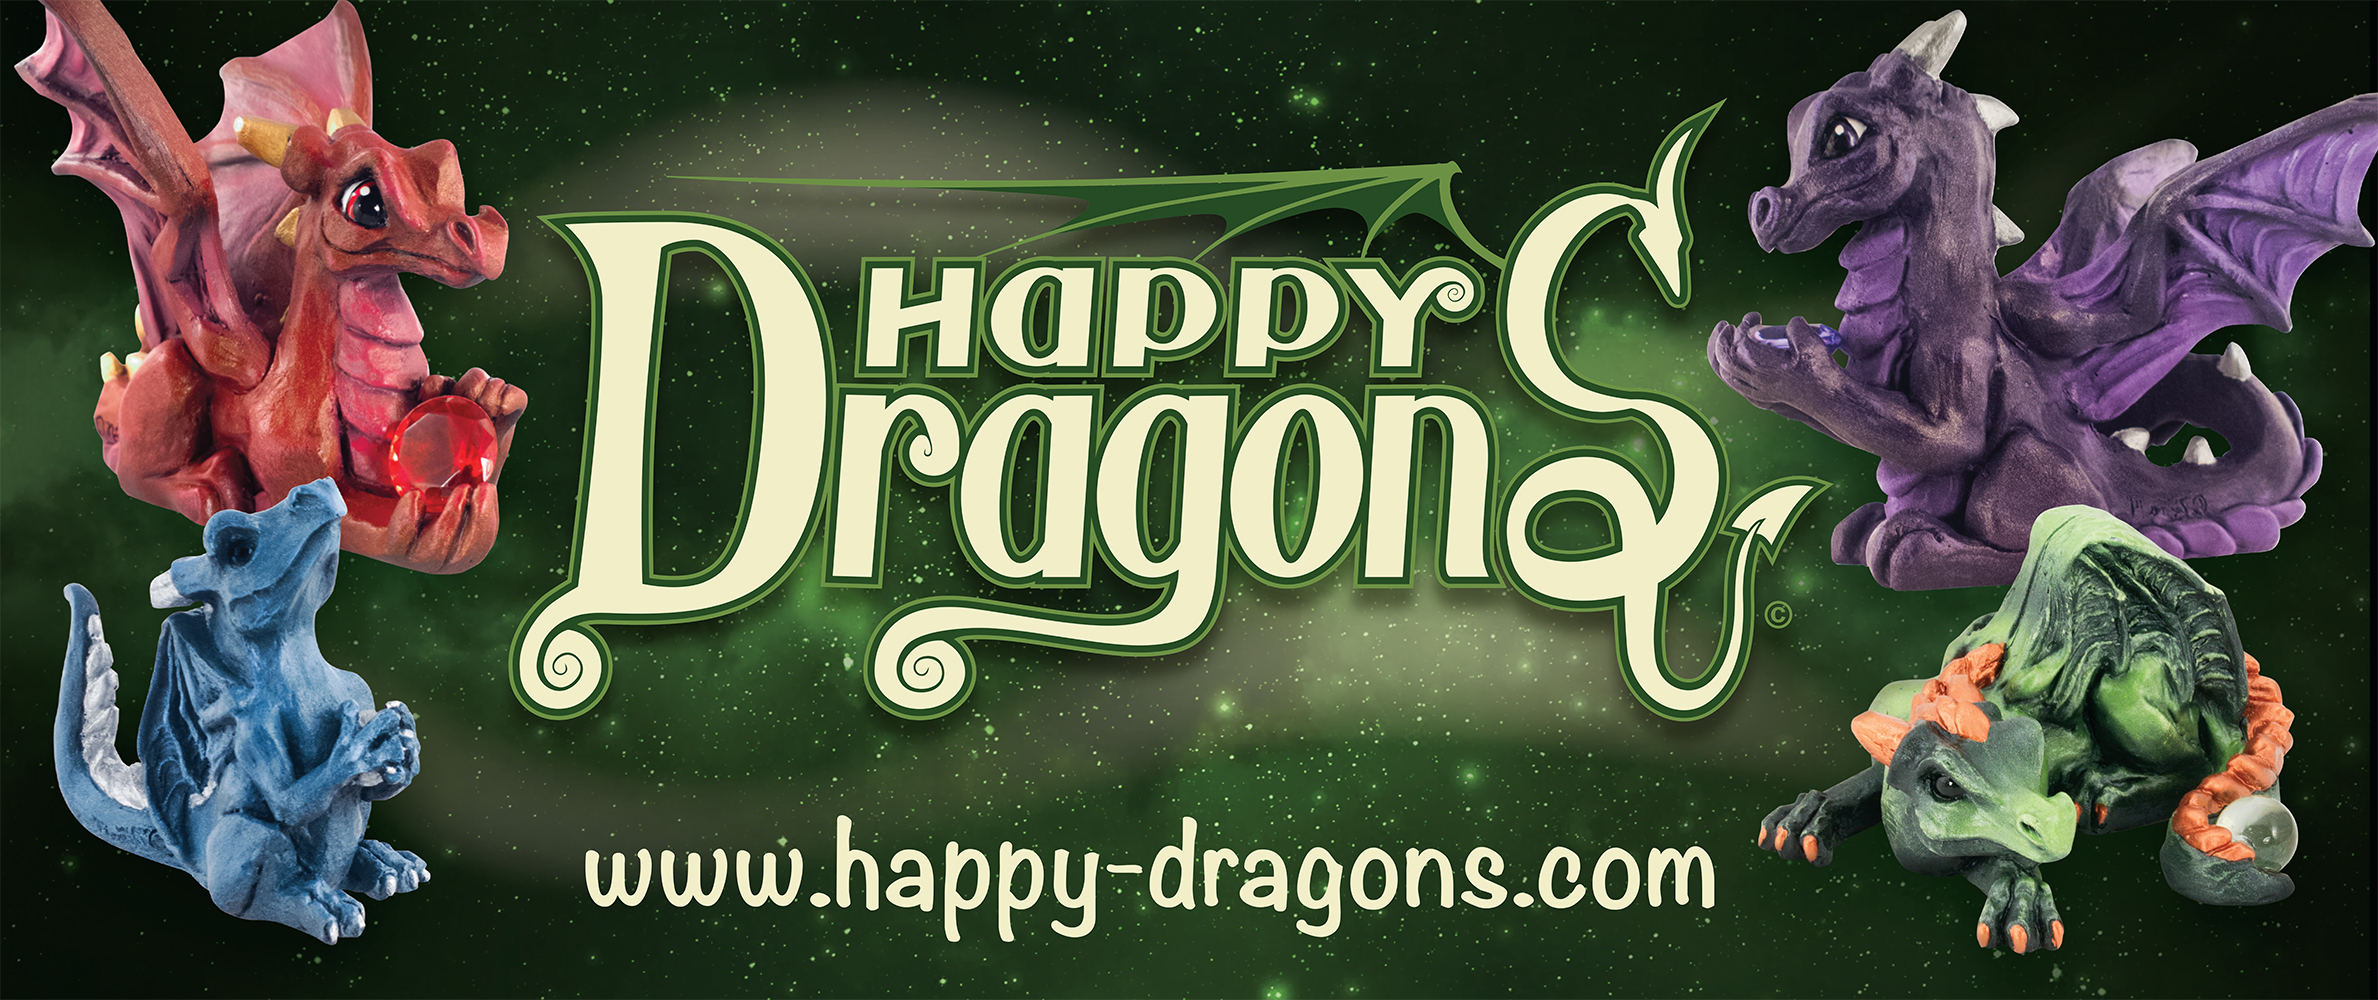 Happy Dragons